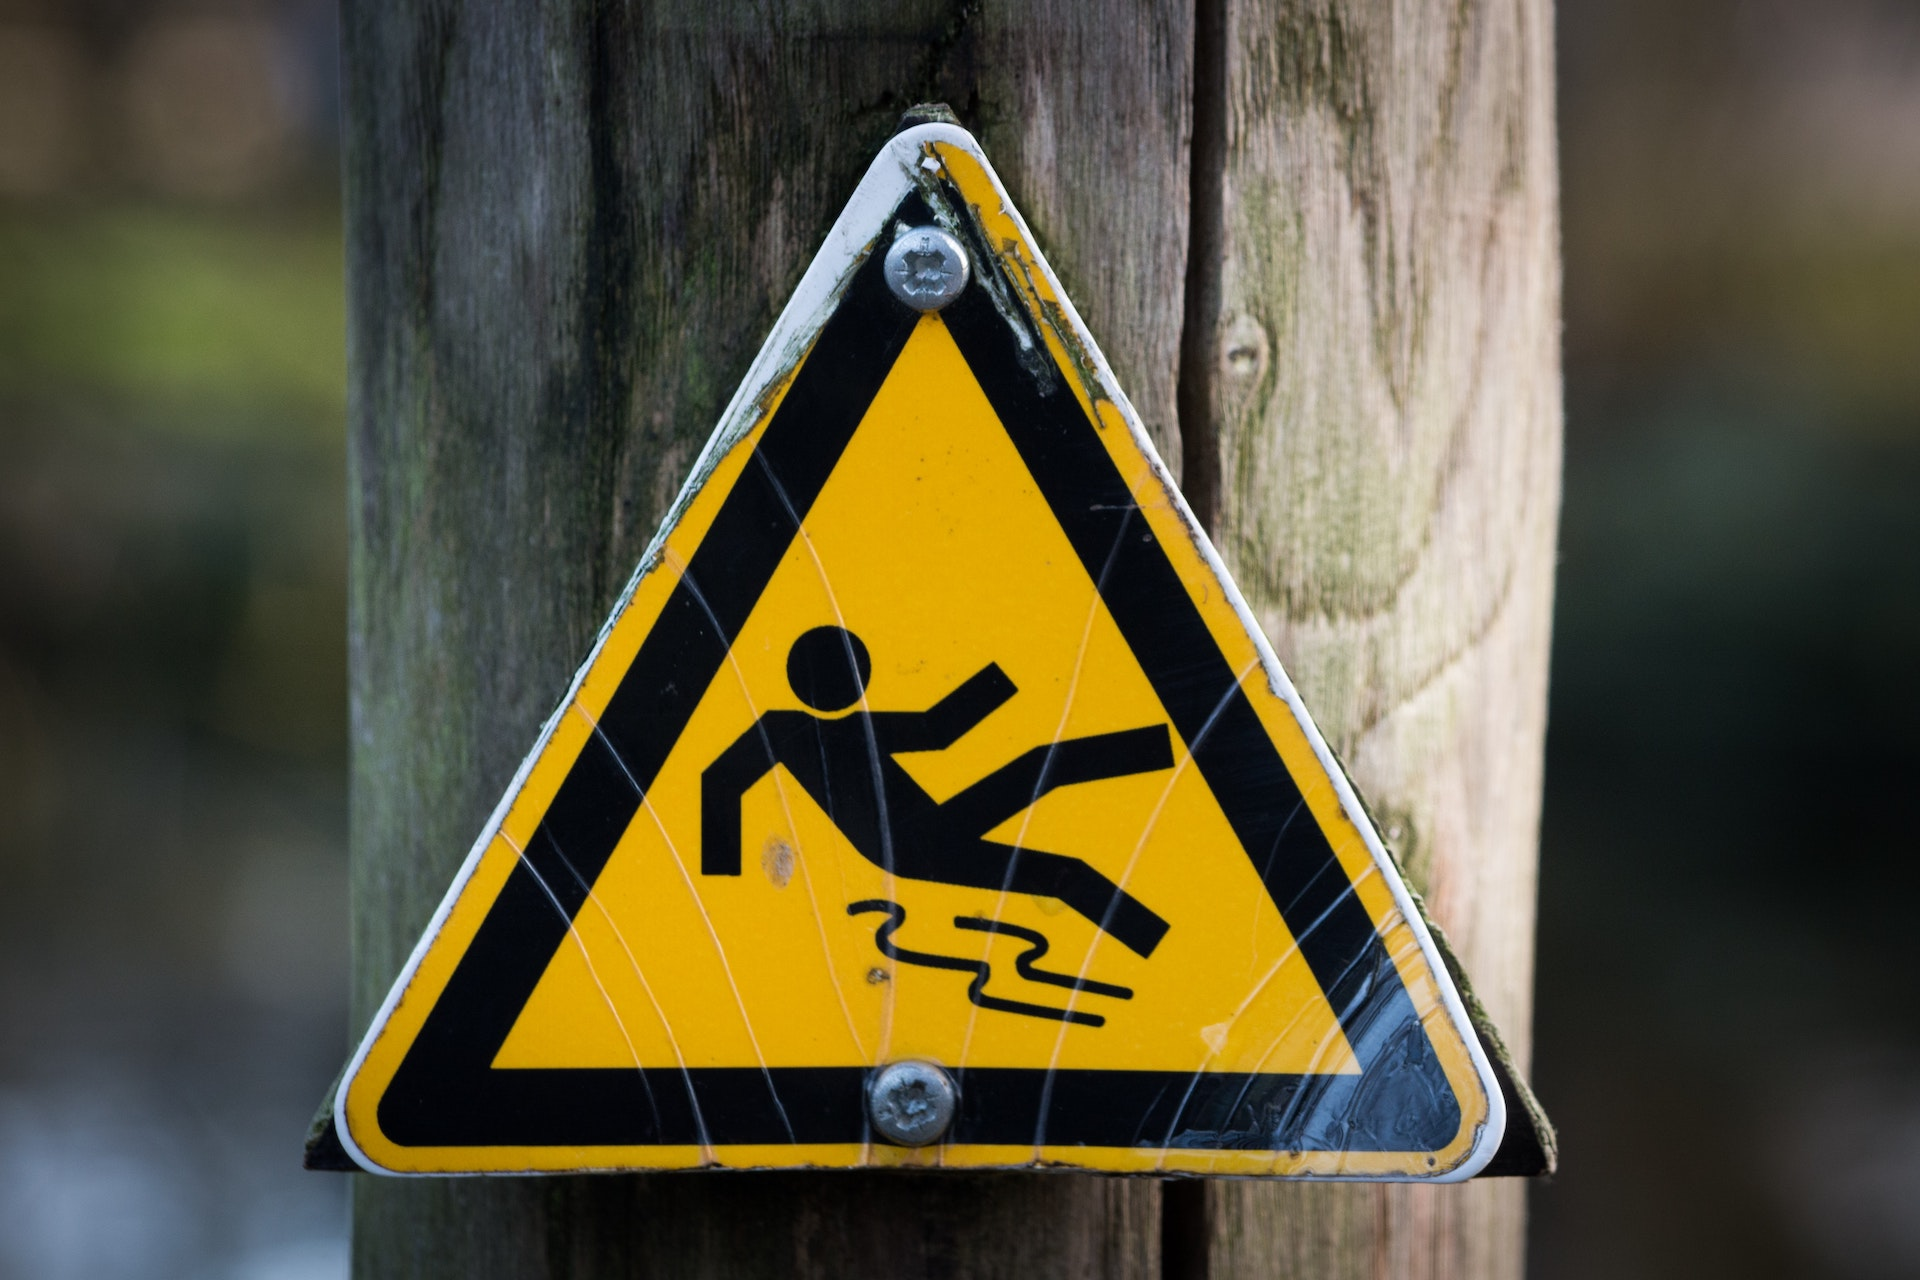 Slippery Surface Warning Sign